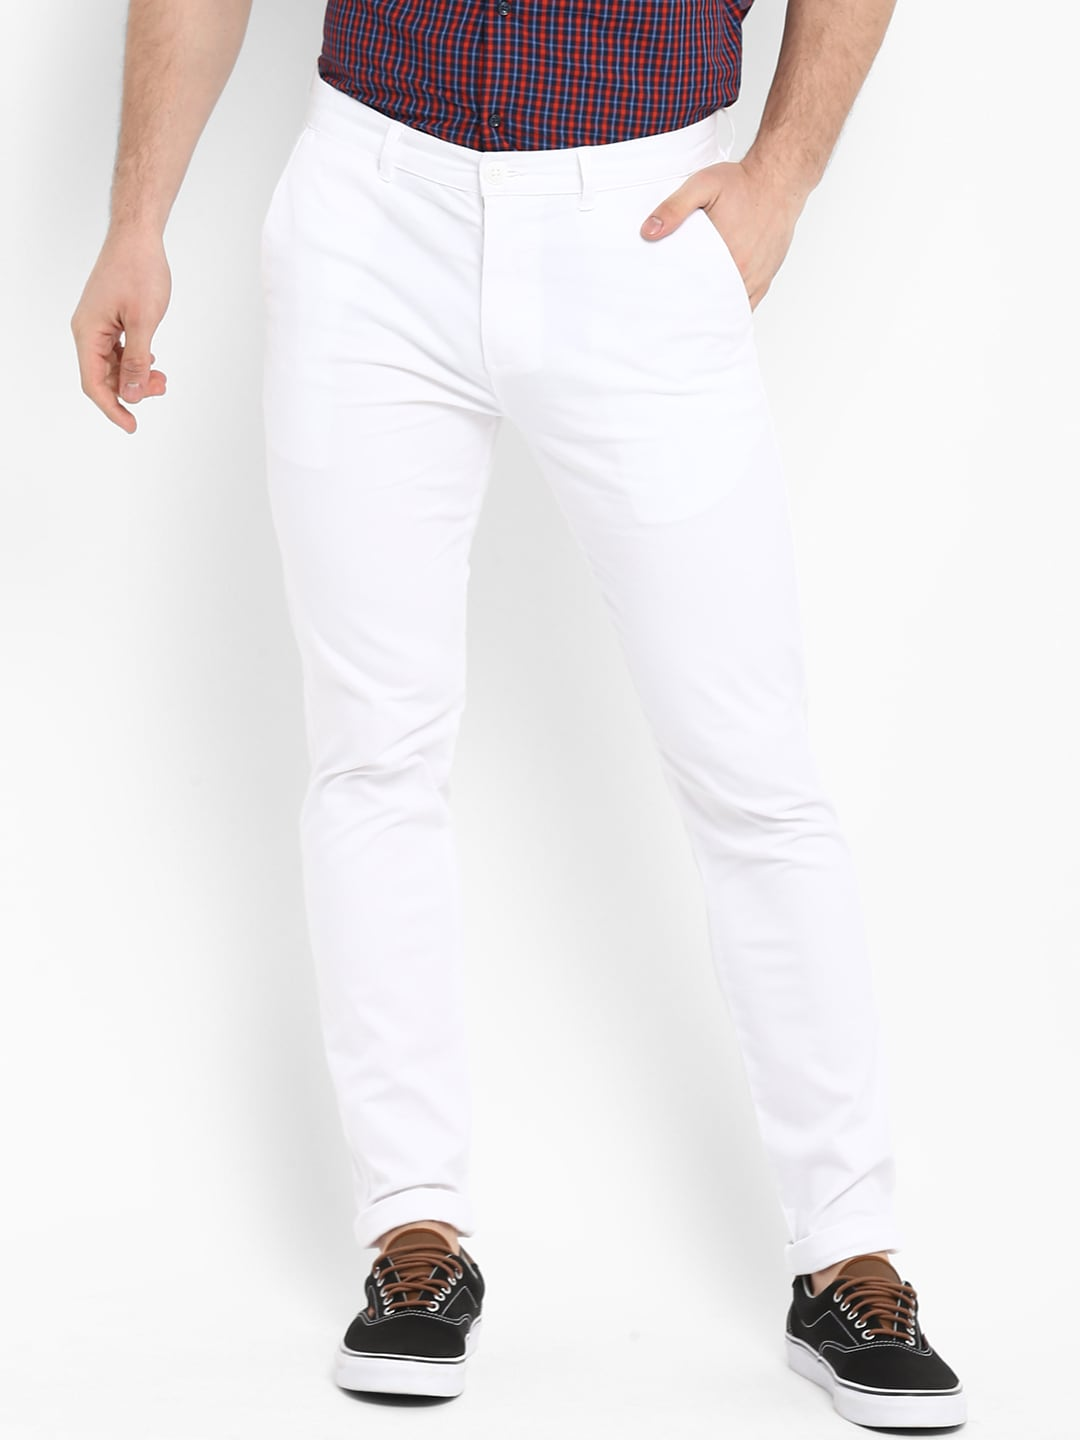 White Trousers Buy Online In India Pp Palazo Kulot Sj0015